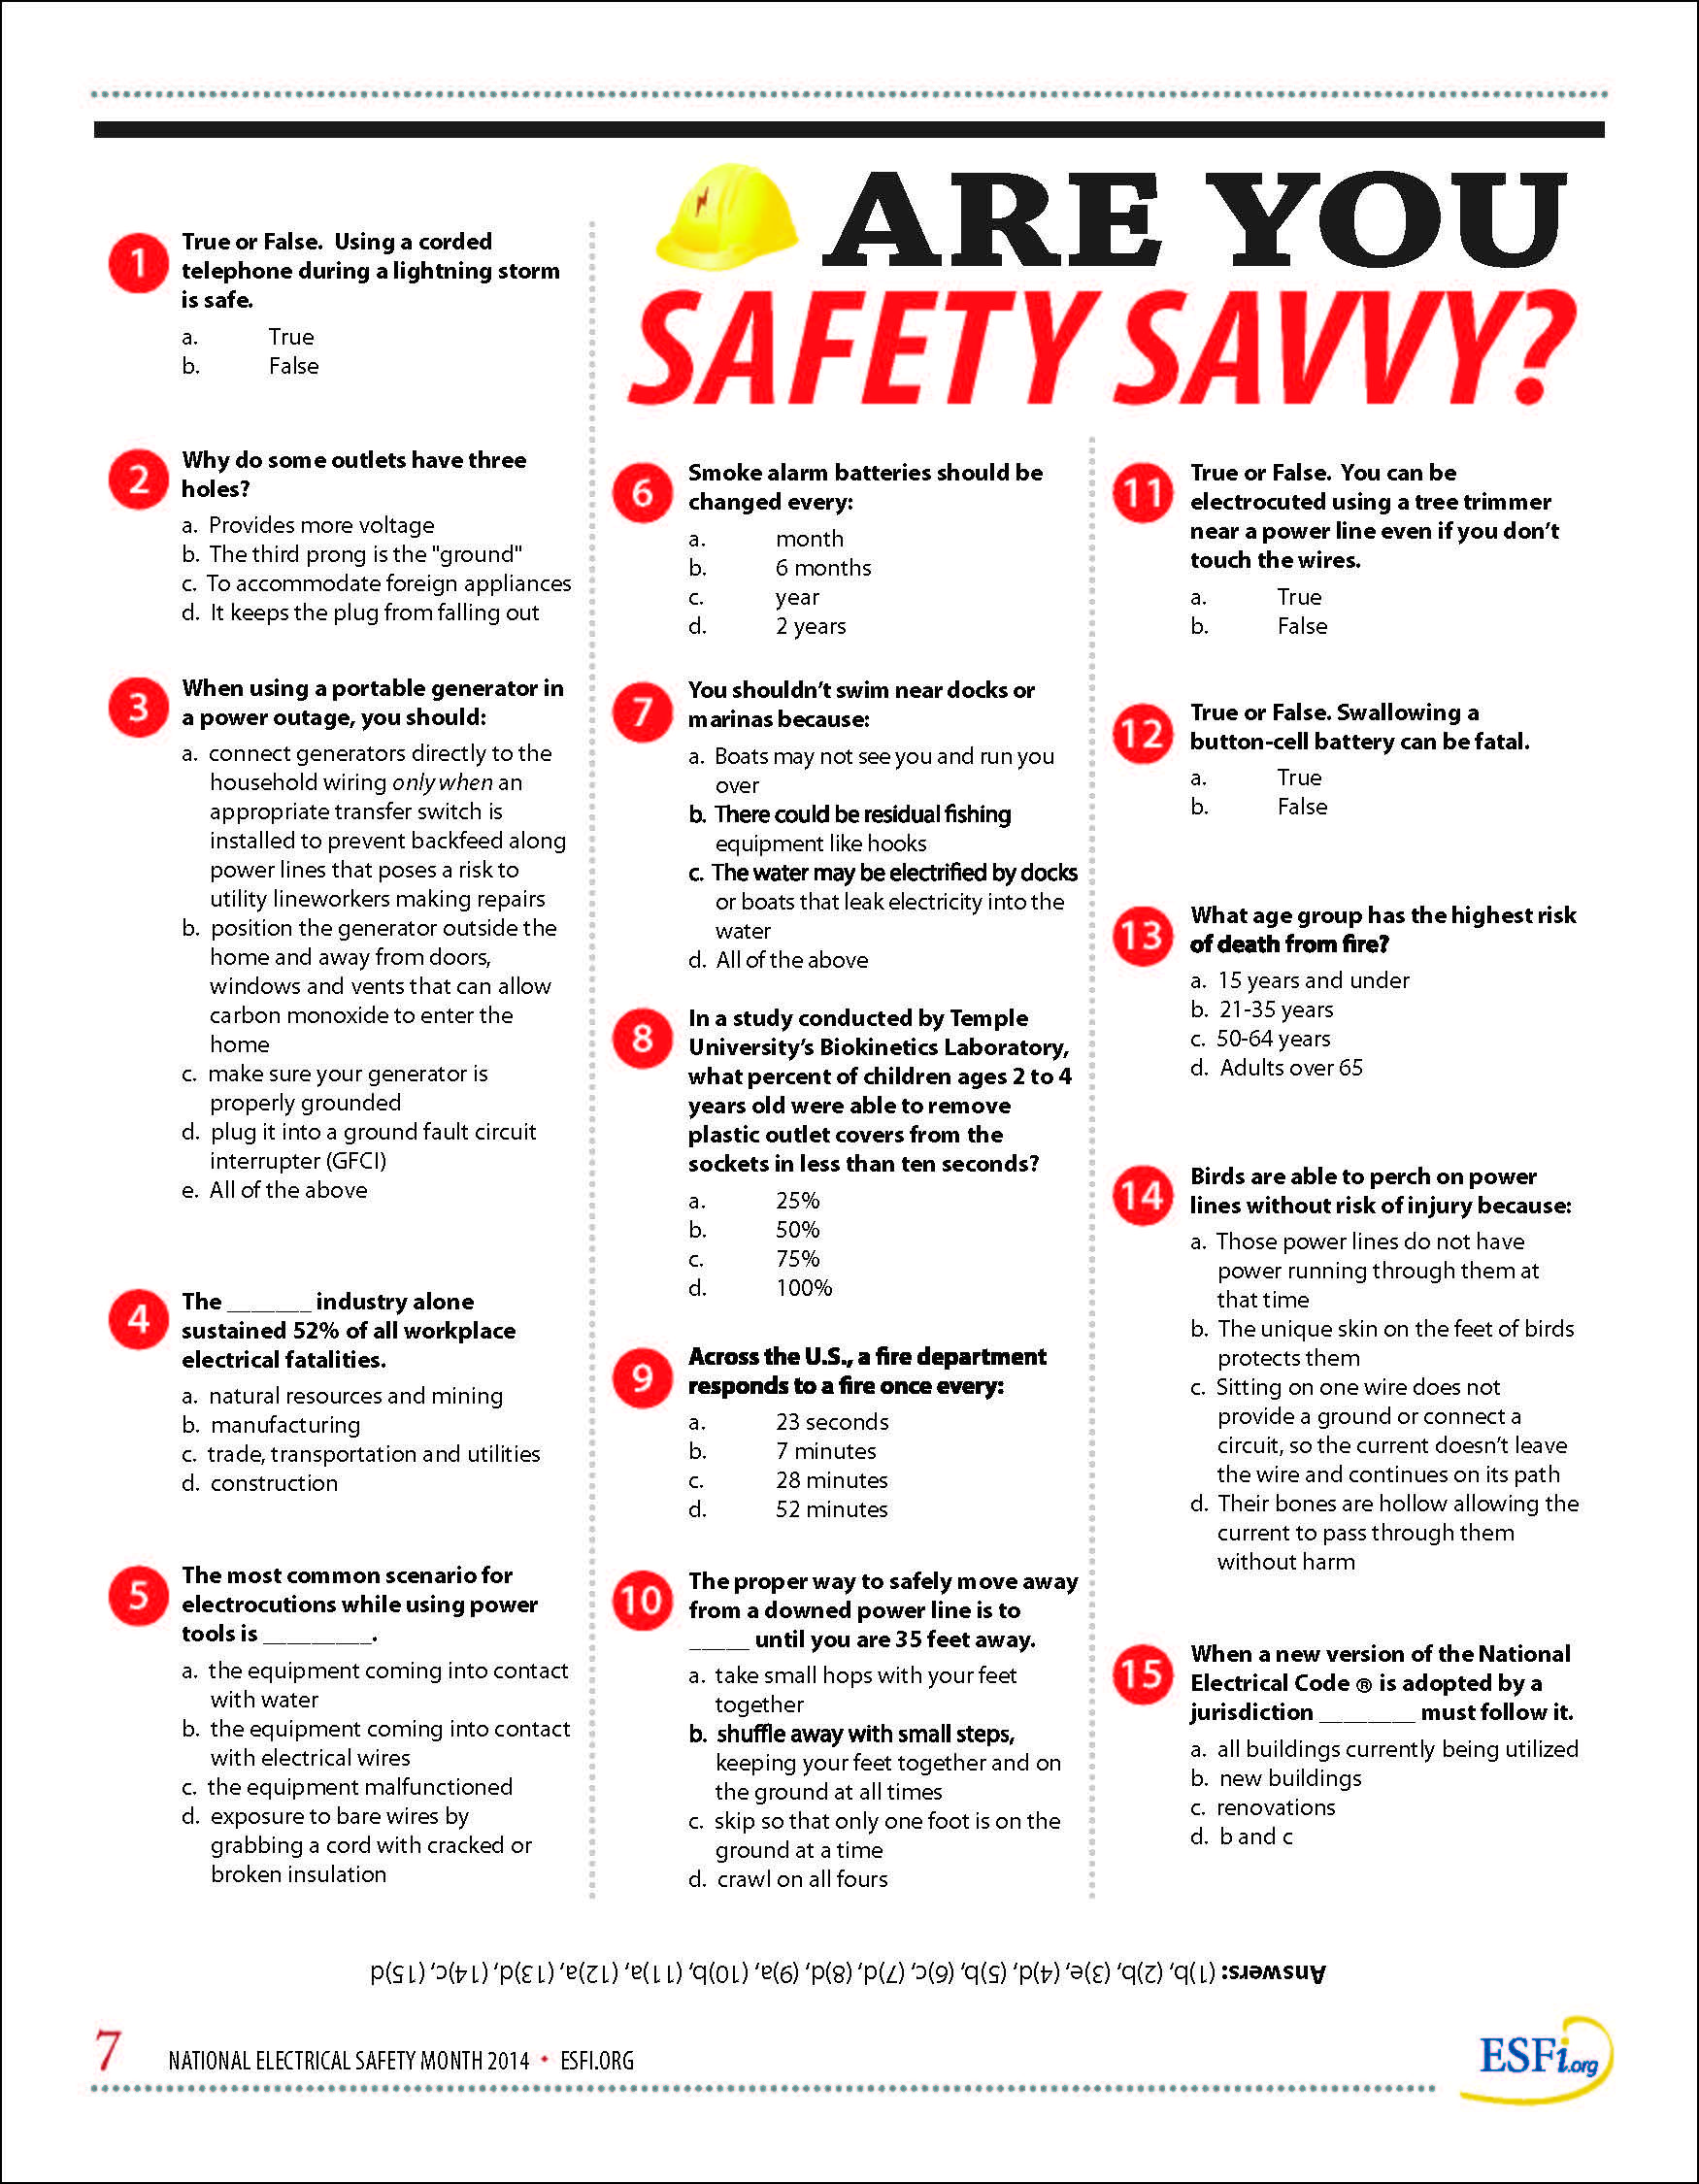 """Are you """"Safety Savvy?"""" 2014 NESM Quiz ESFi"""